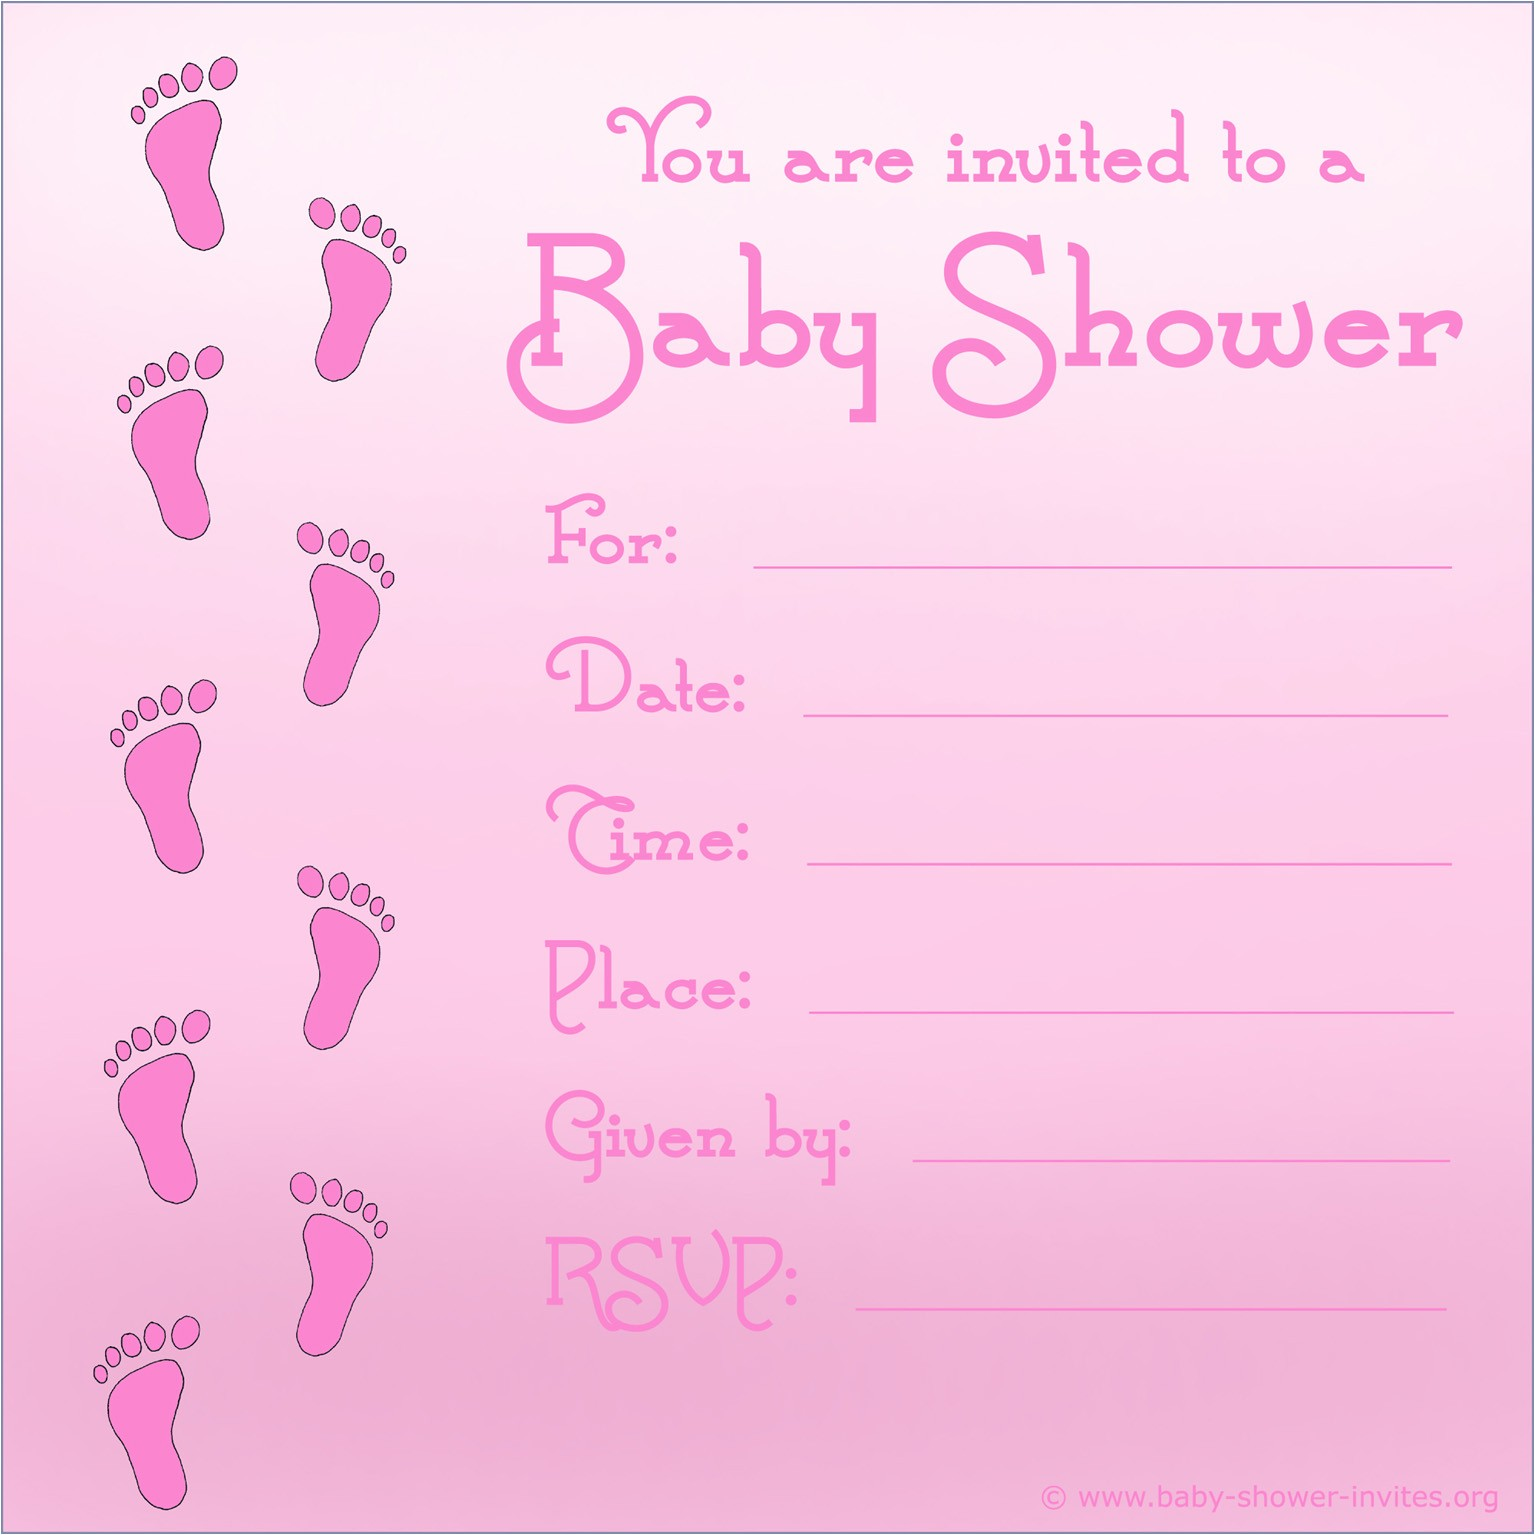 Create A Baby Shower Invitation Free Free Printable Baby Shower Invitations for Girls